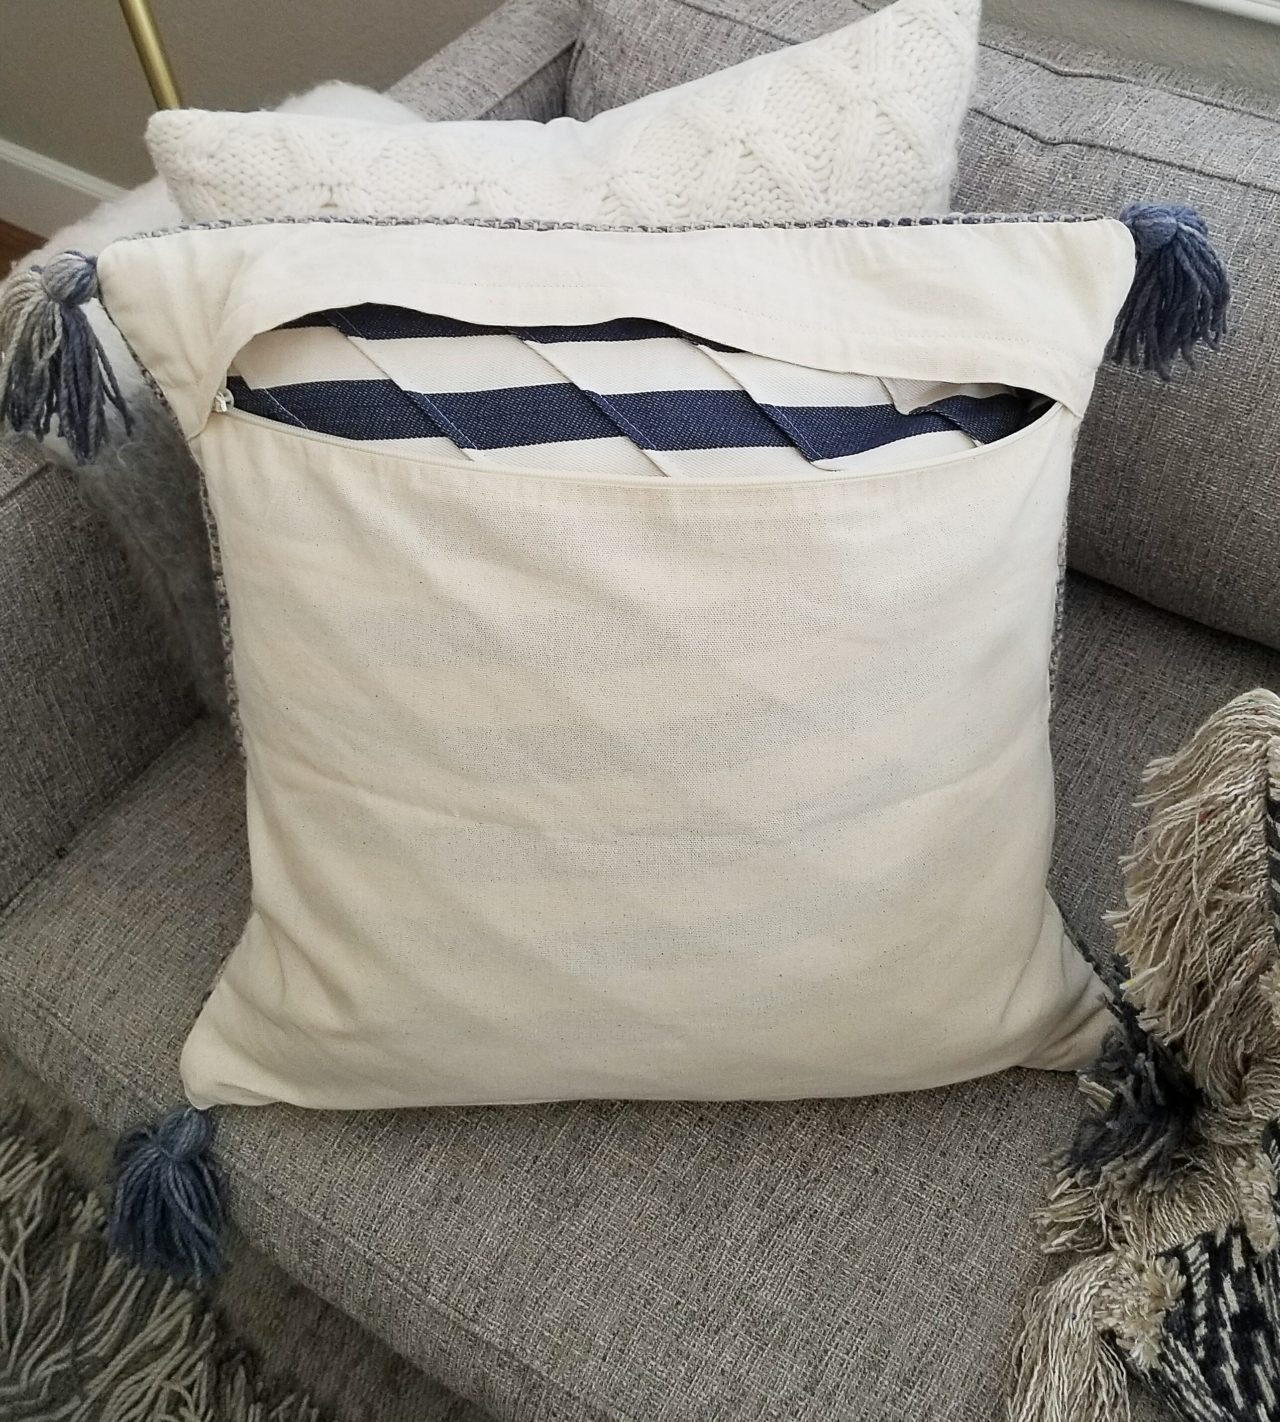 Pillow Styling, Sources and Arrangements - House Becomes ...